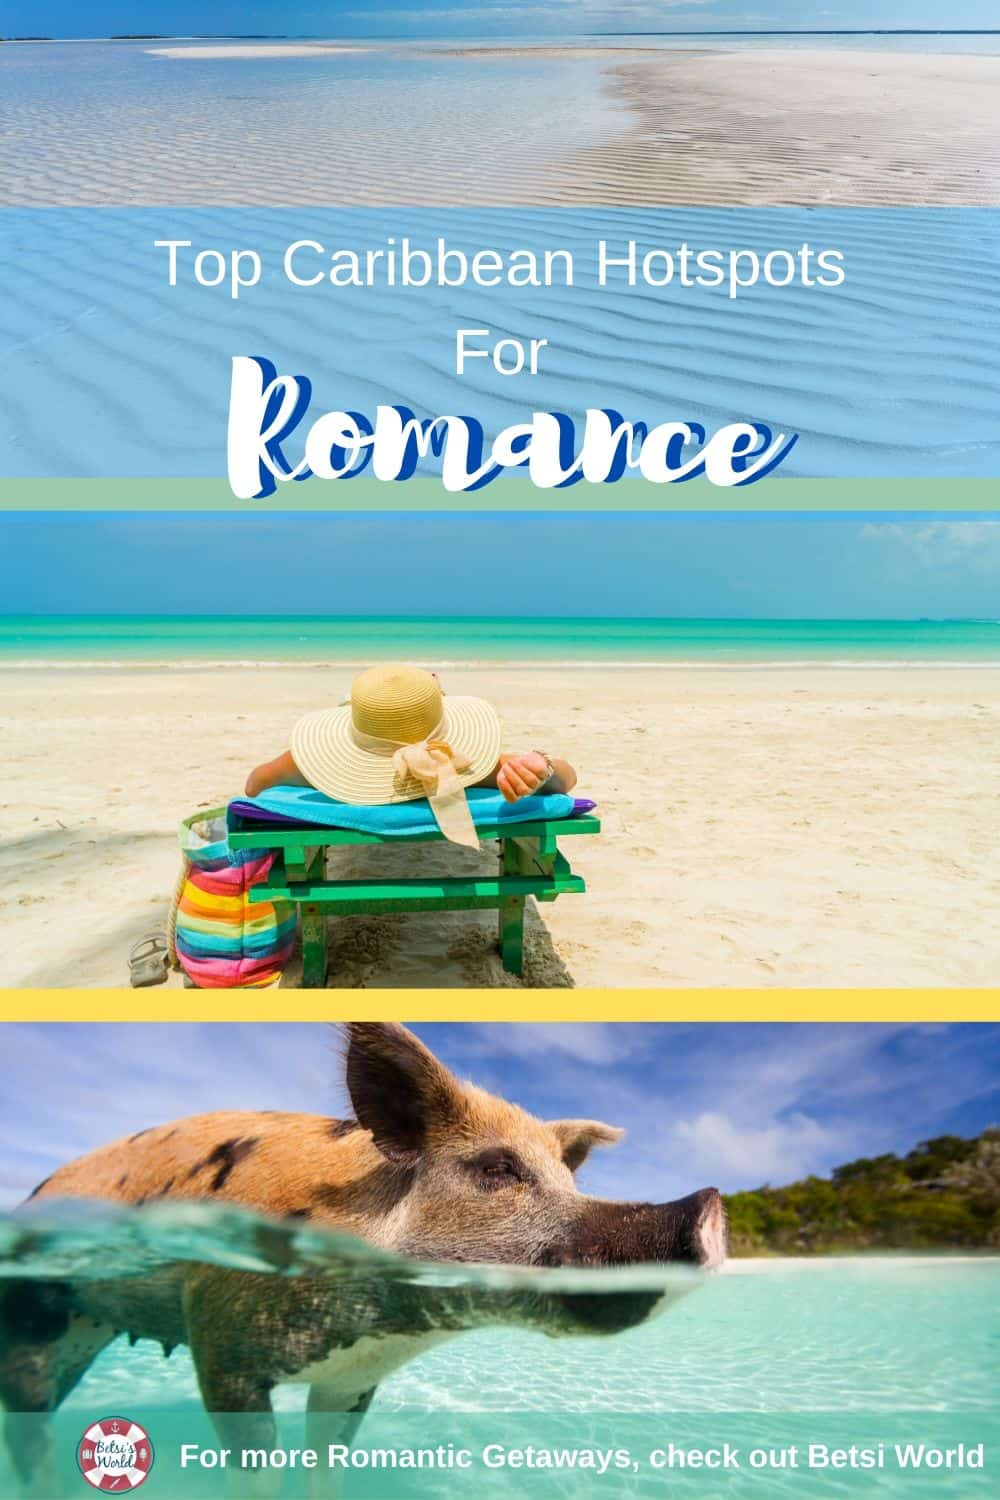 Want more romantic getaways? Check out https://betsiworld.com